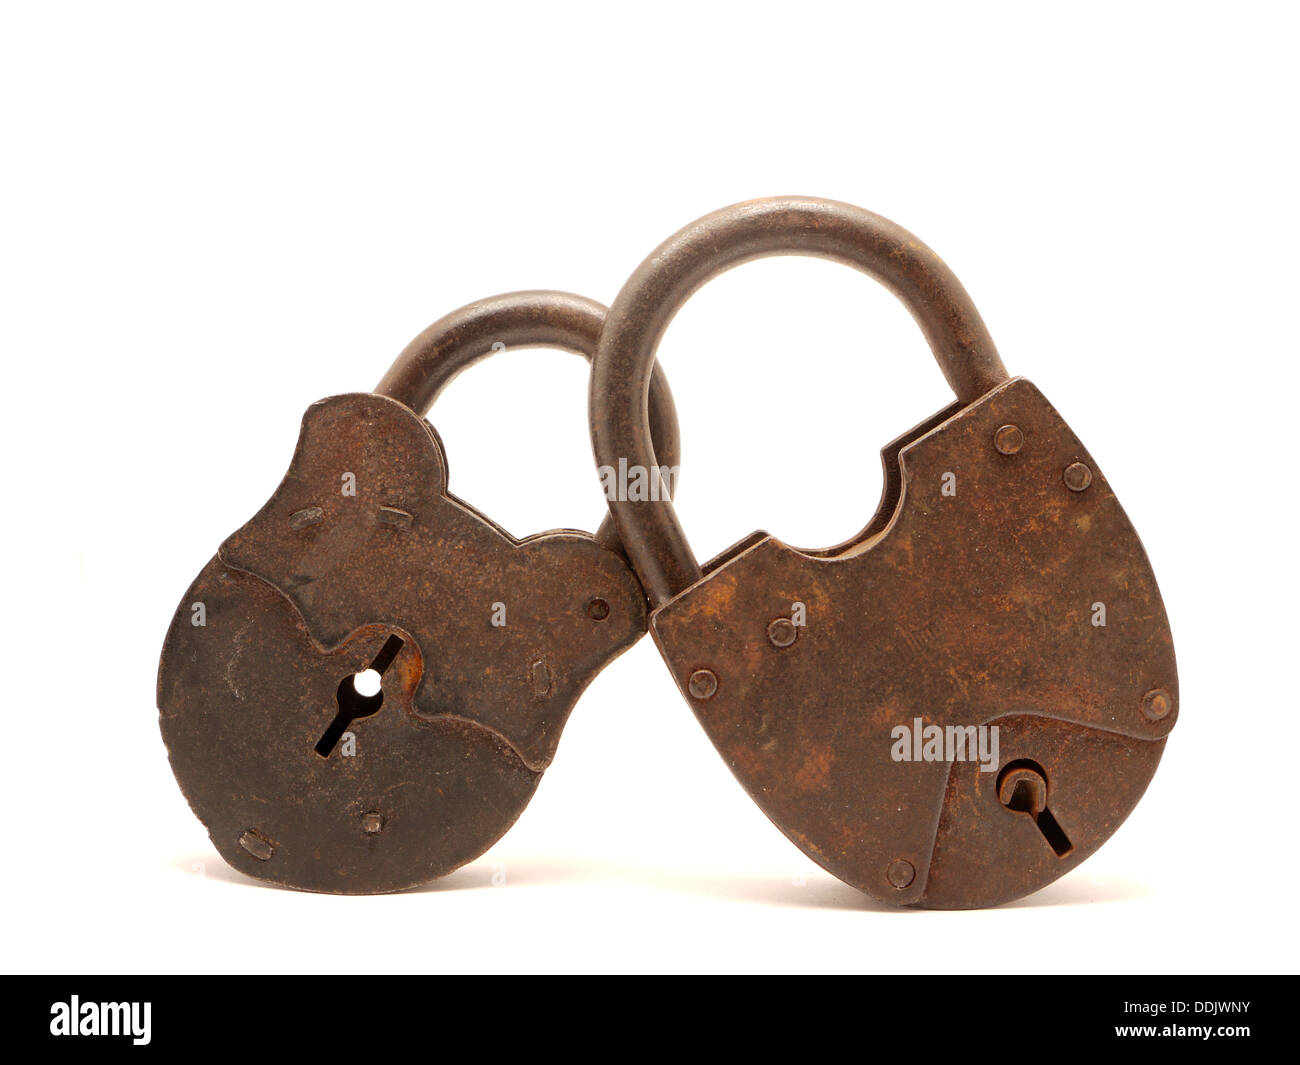 the old locks on a white background stock photo 60036983 alamy